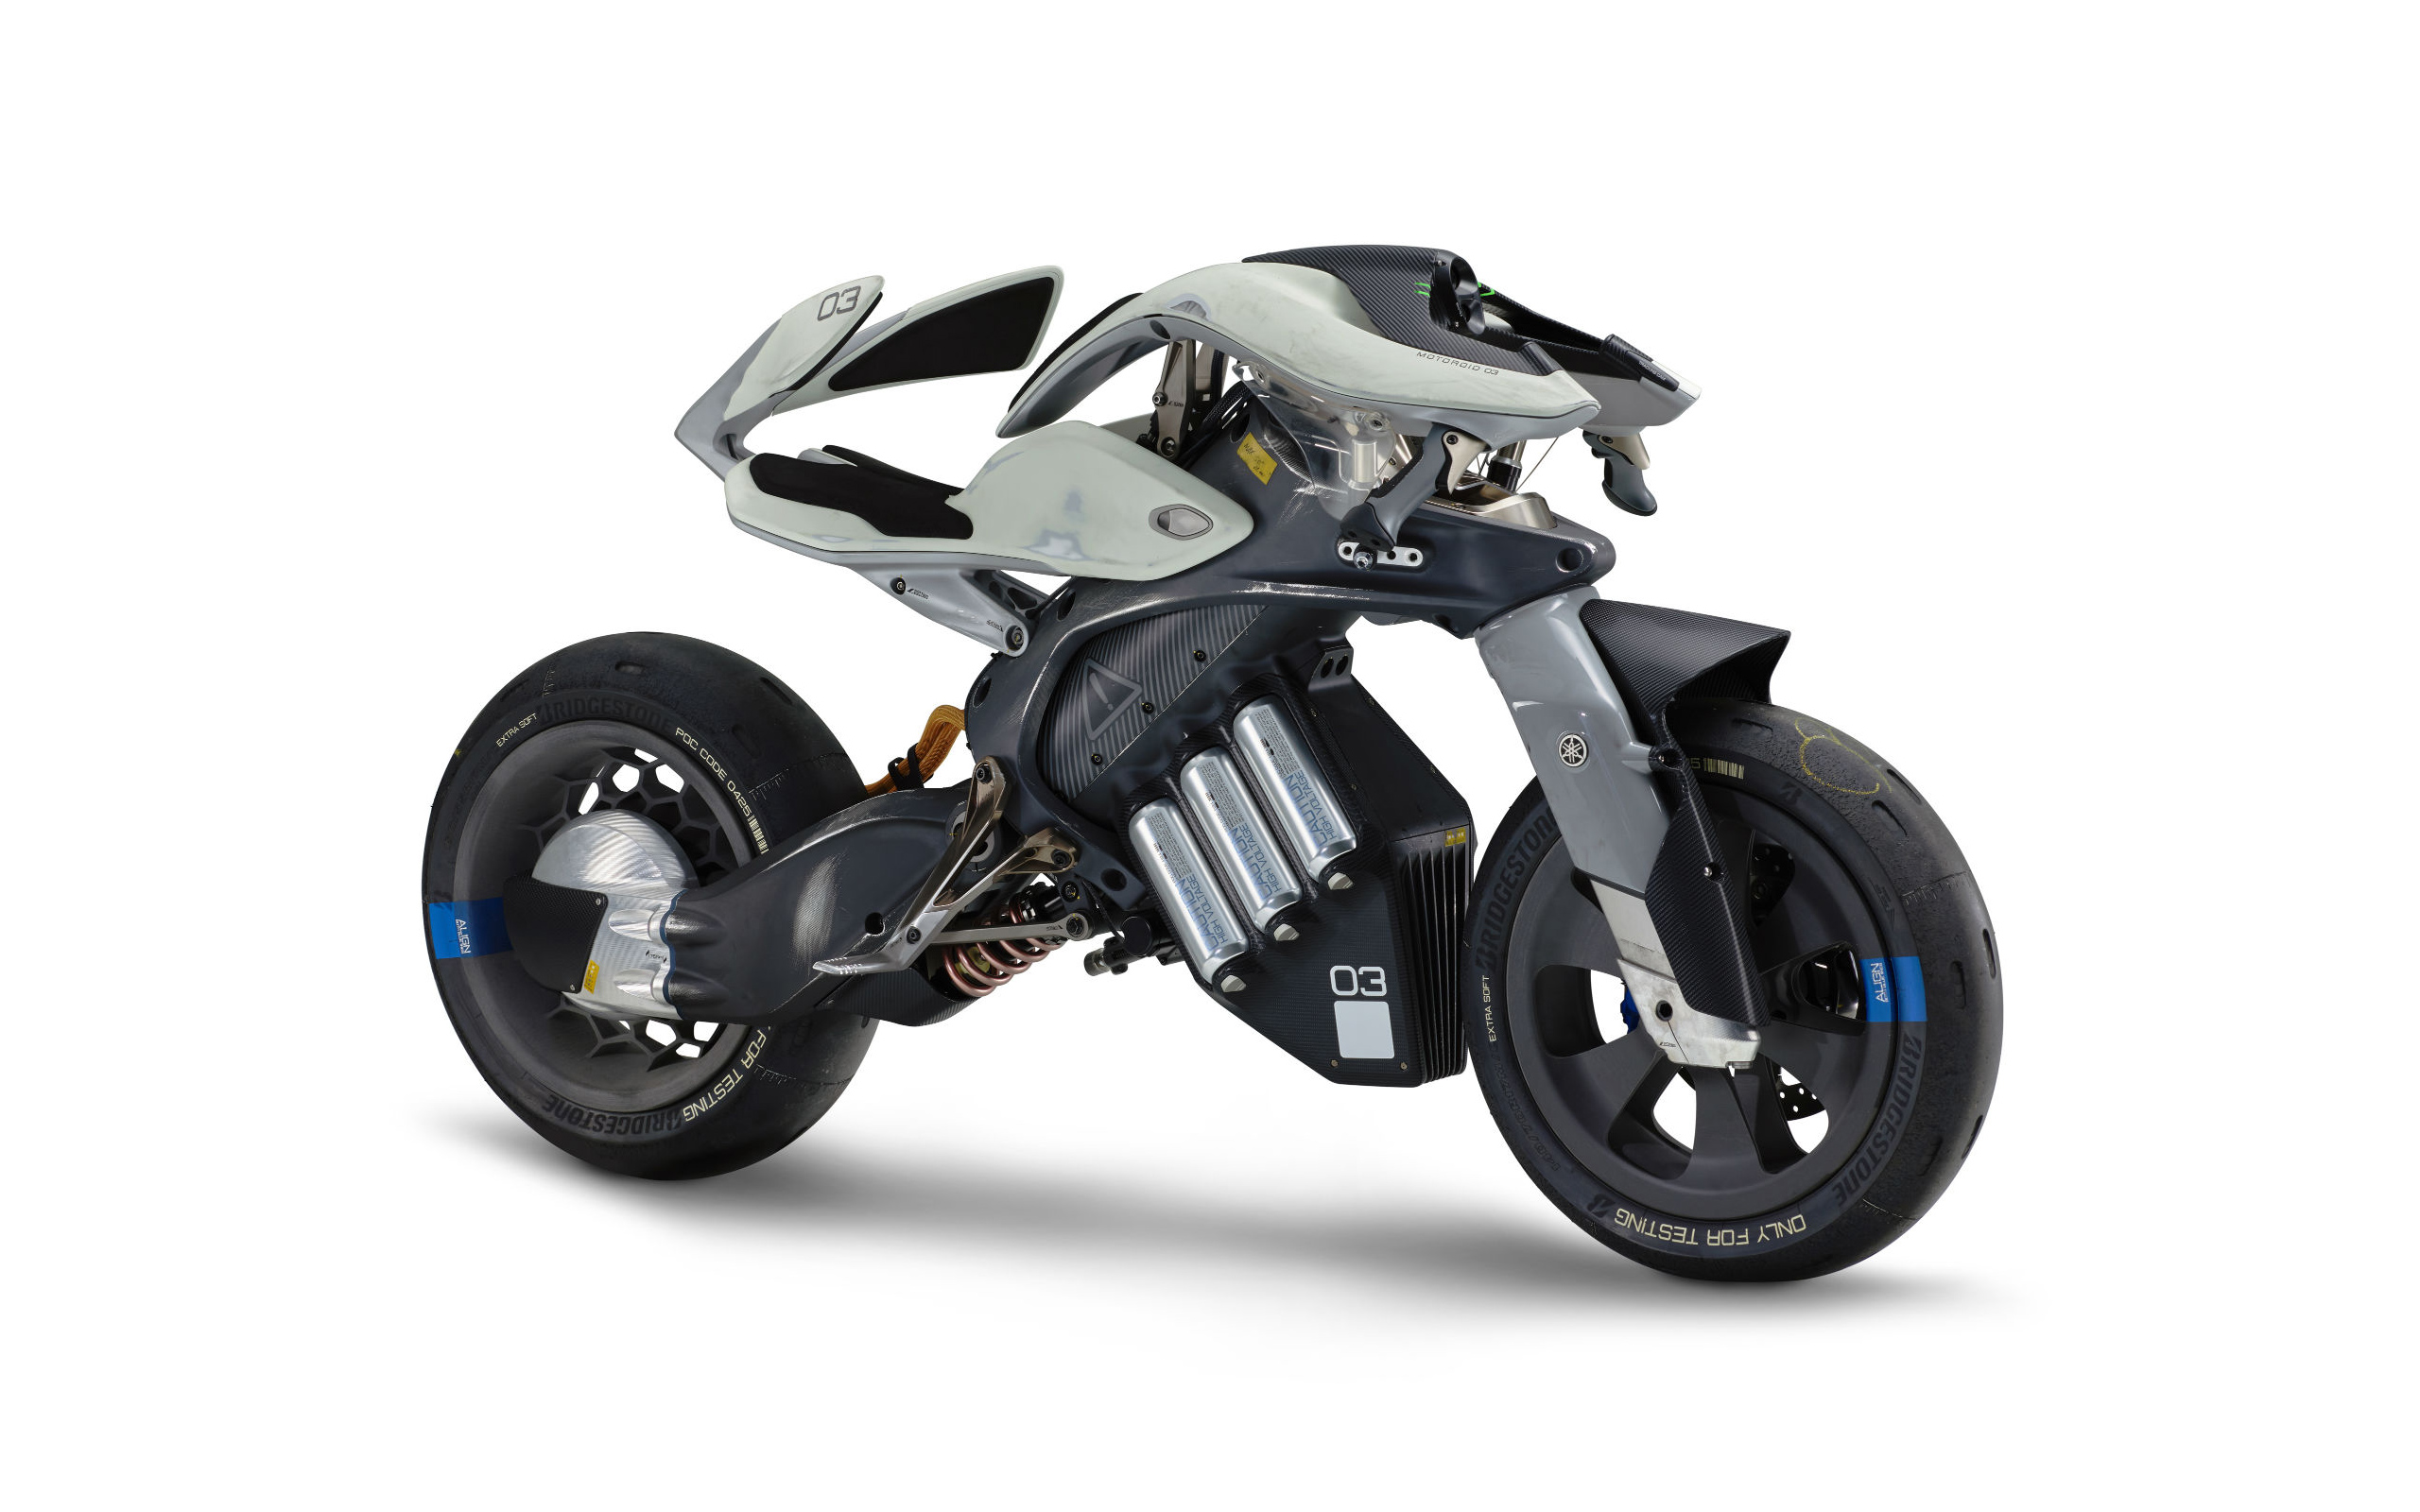 Yamaha Futuristic Motoroid Concept,hd wallpapers,desktop backgrounds,mobile wallpapers, free wallpapers,high quality wallpapers,widescreen wallpapers,hdtv wallpapers,4k wallpapers,stock photos